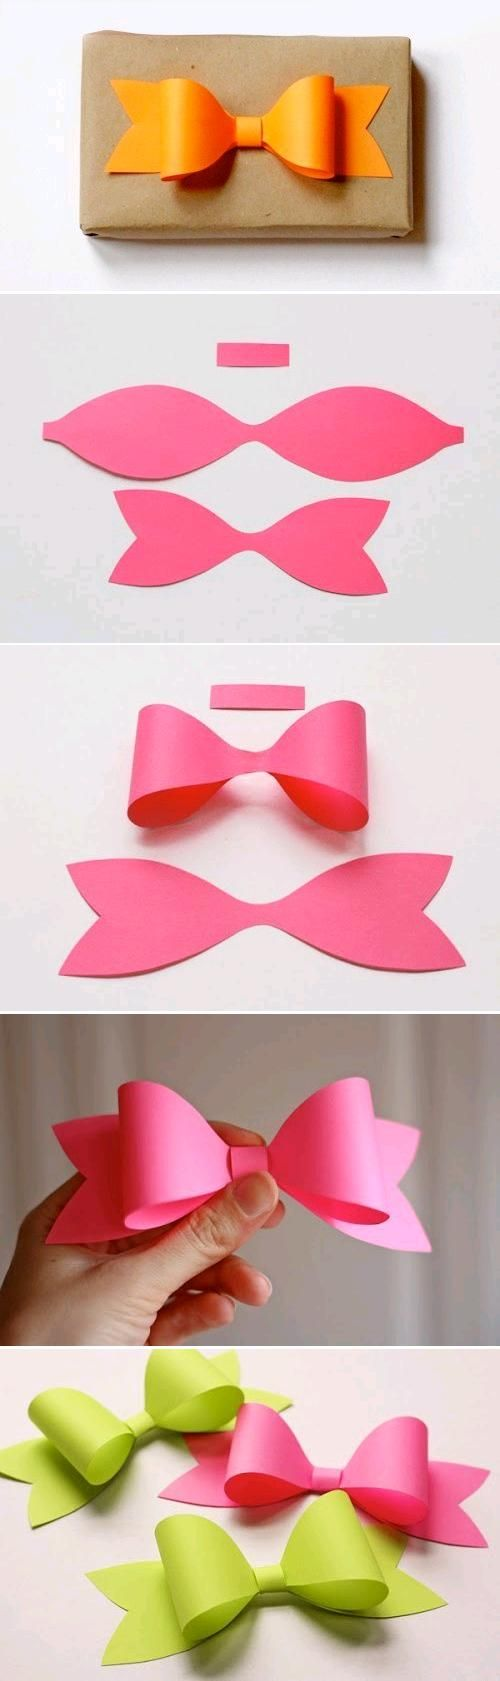 How to Make Paper Bows